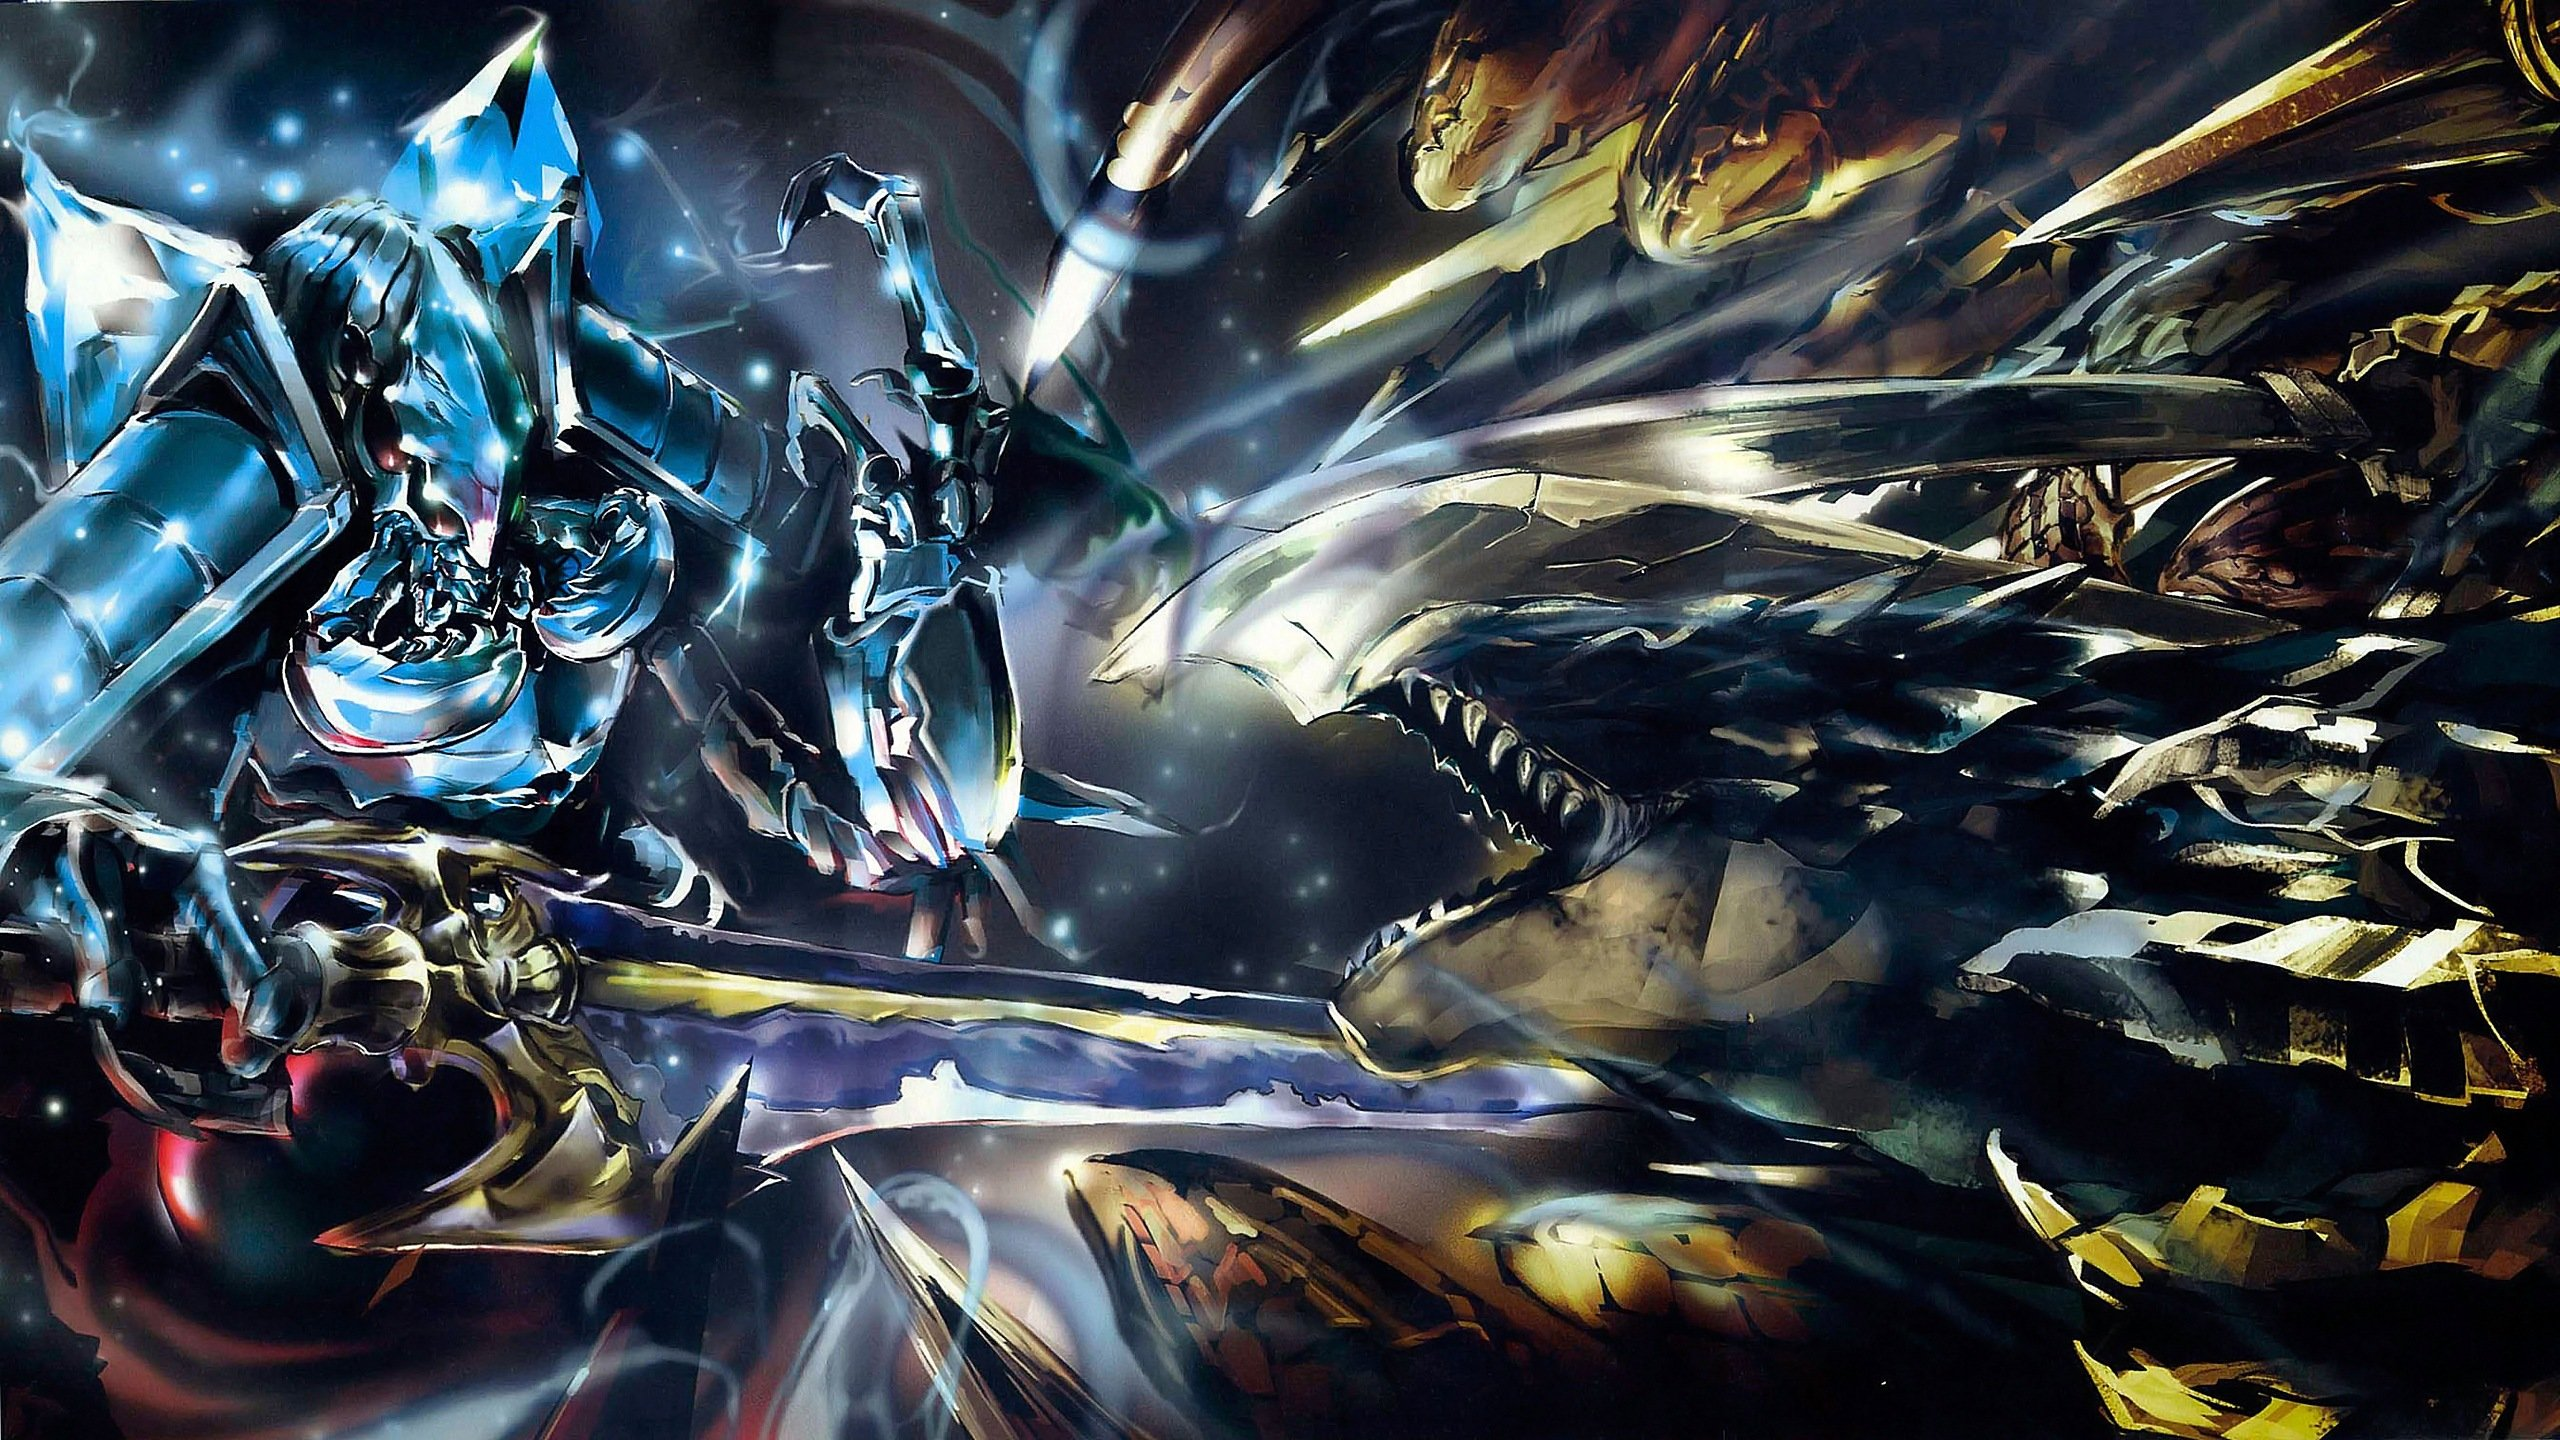 Download hd 2560x1440 Overlord PC wallpaper ID:275937 for free